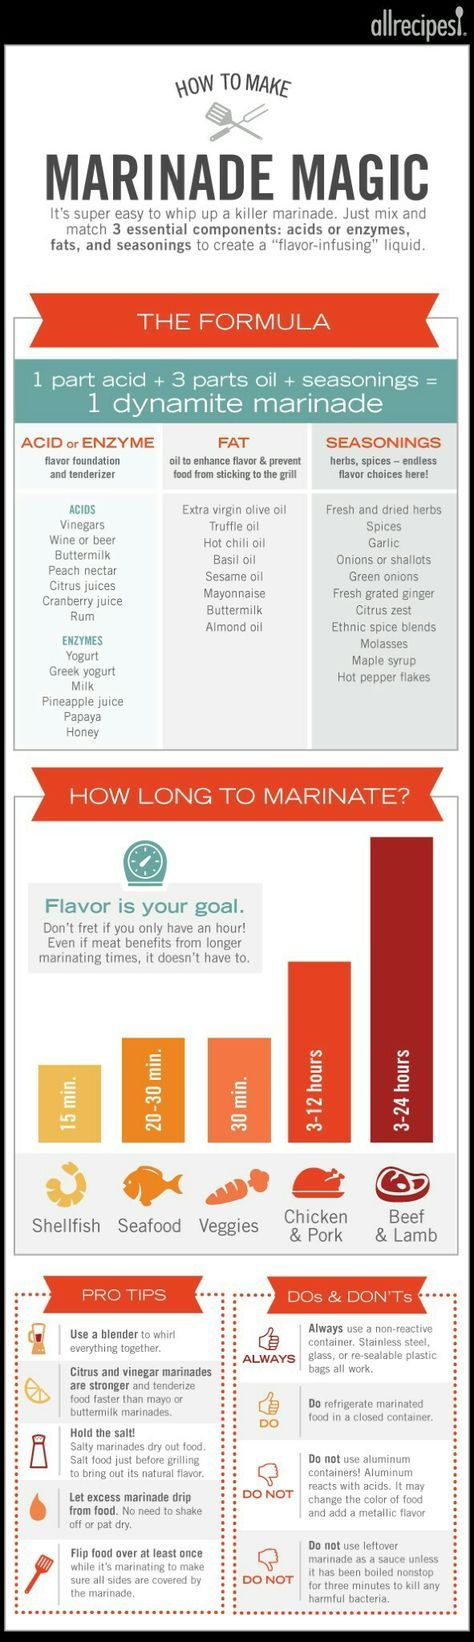 Helpful tips for marinating